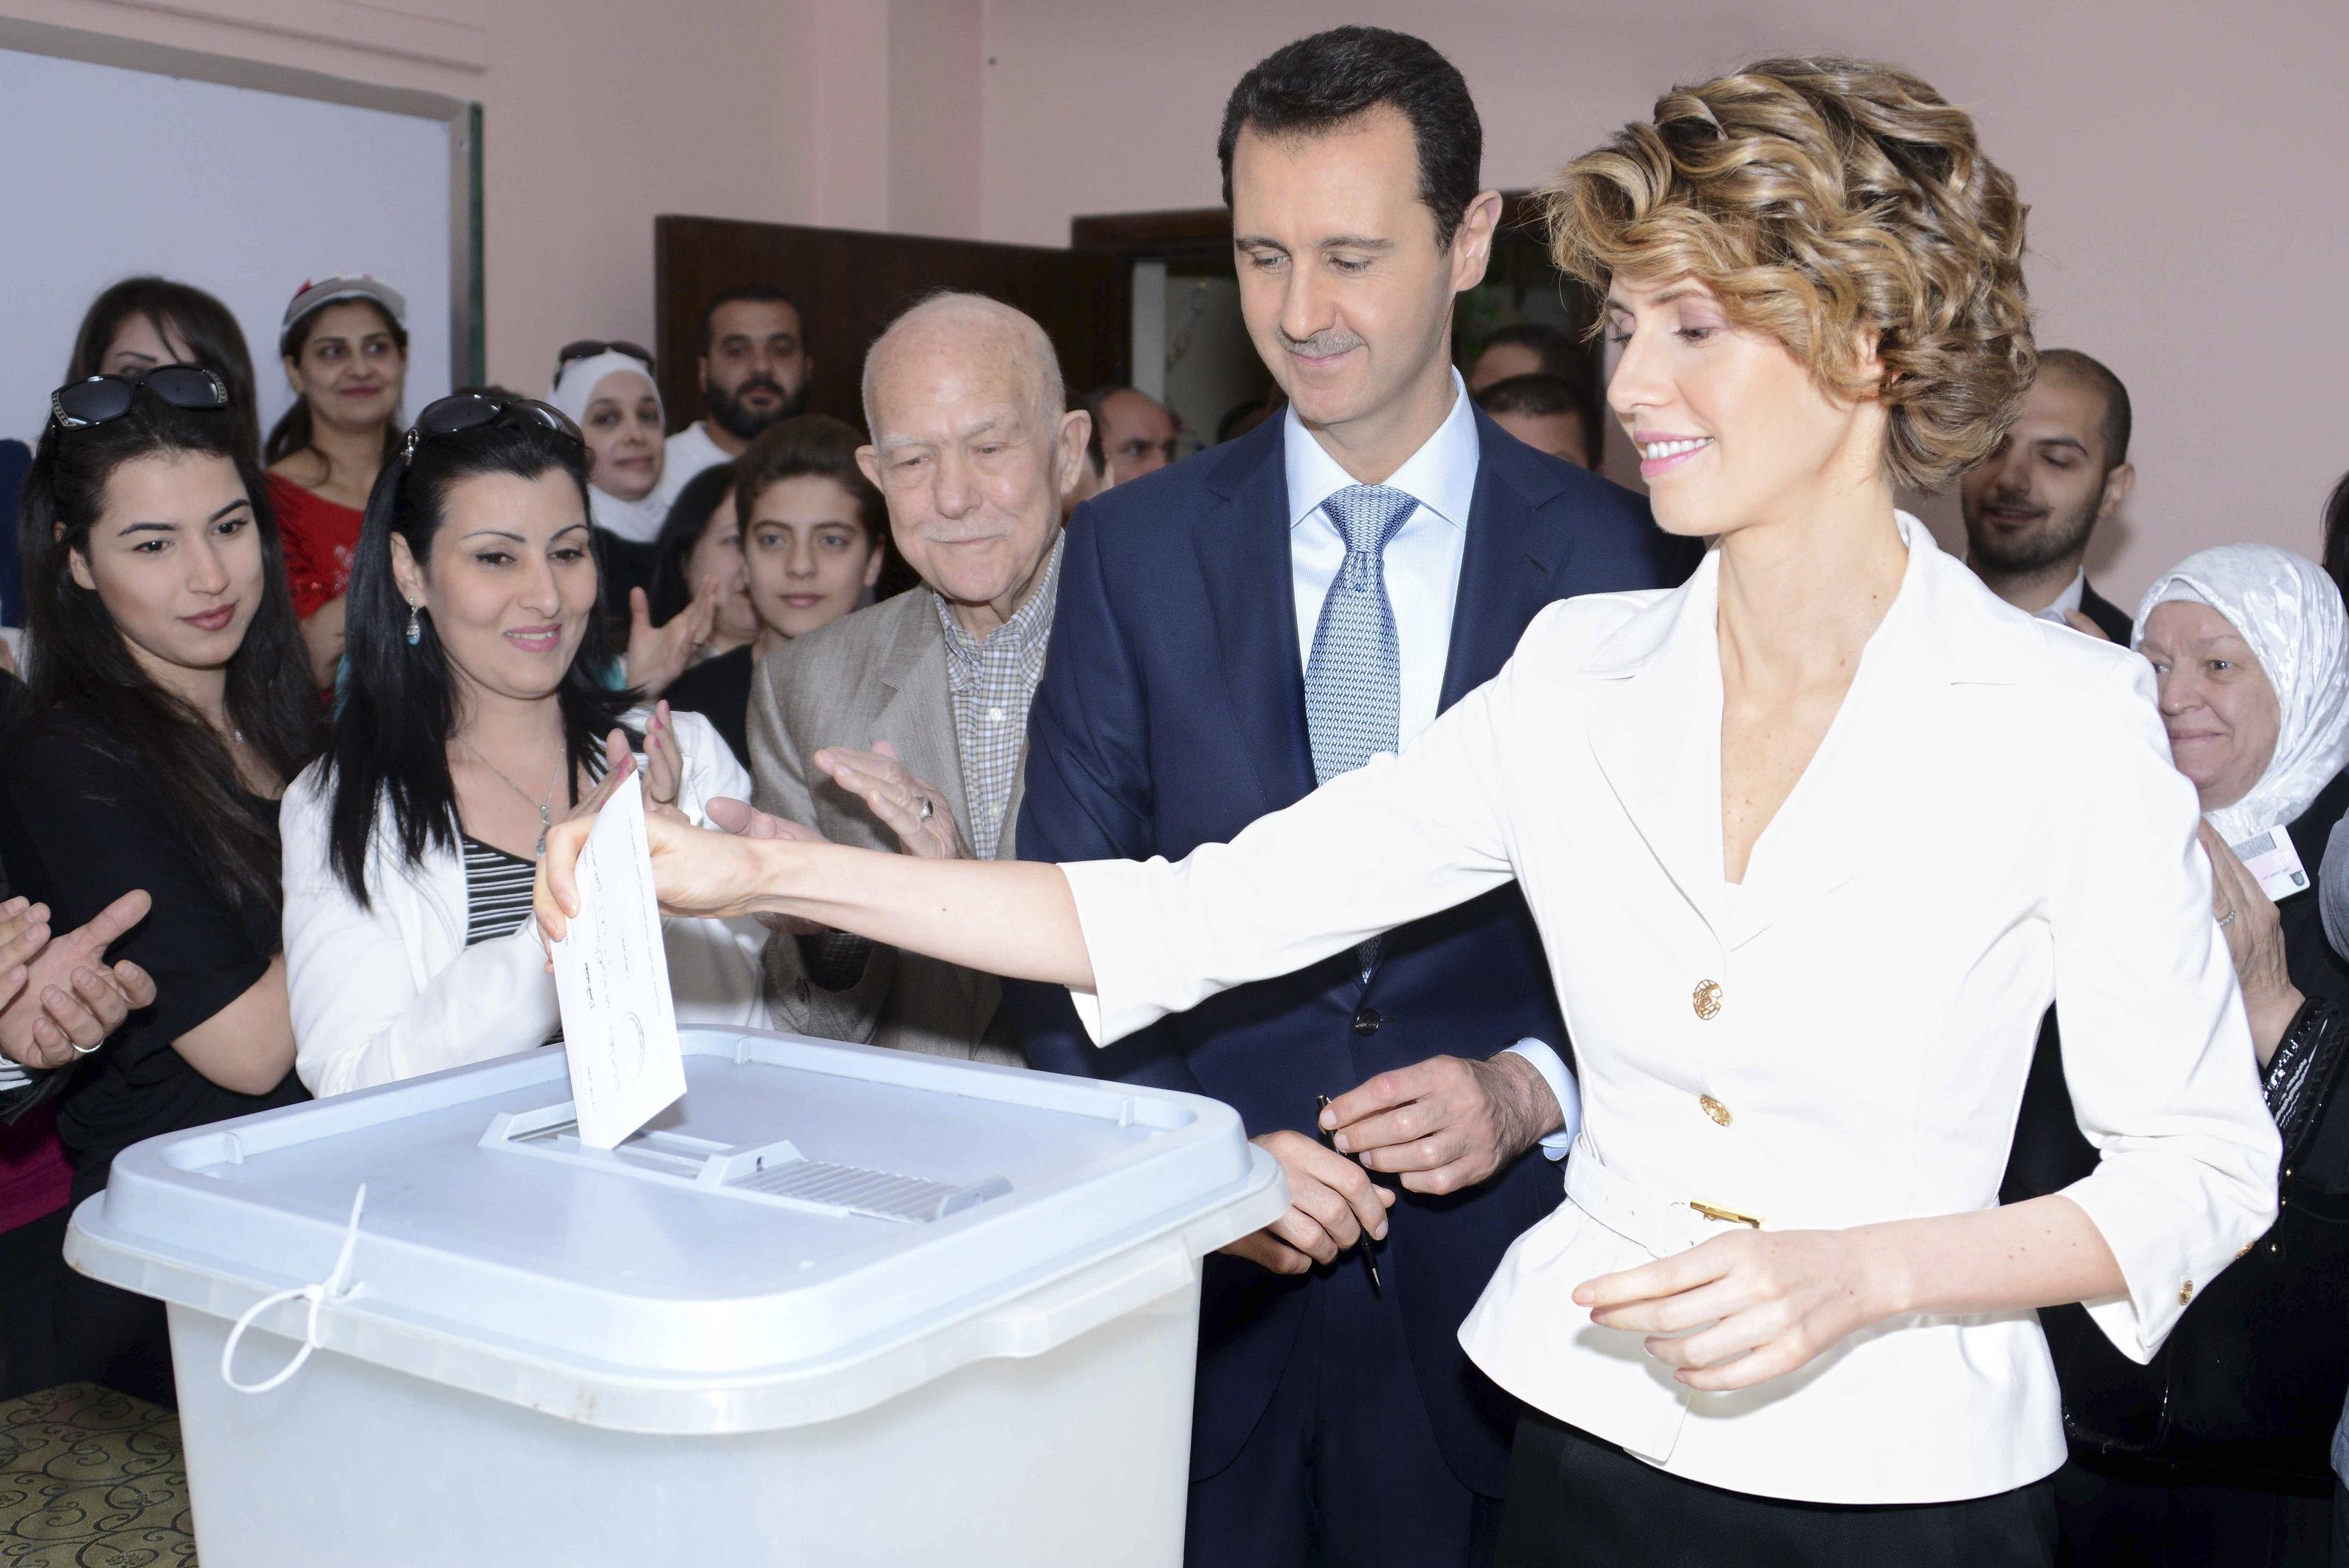 Syrian election